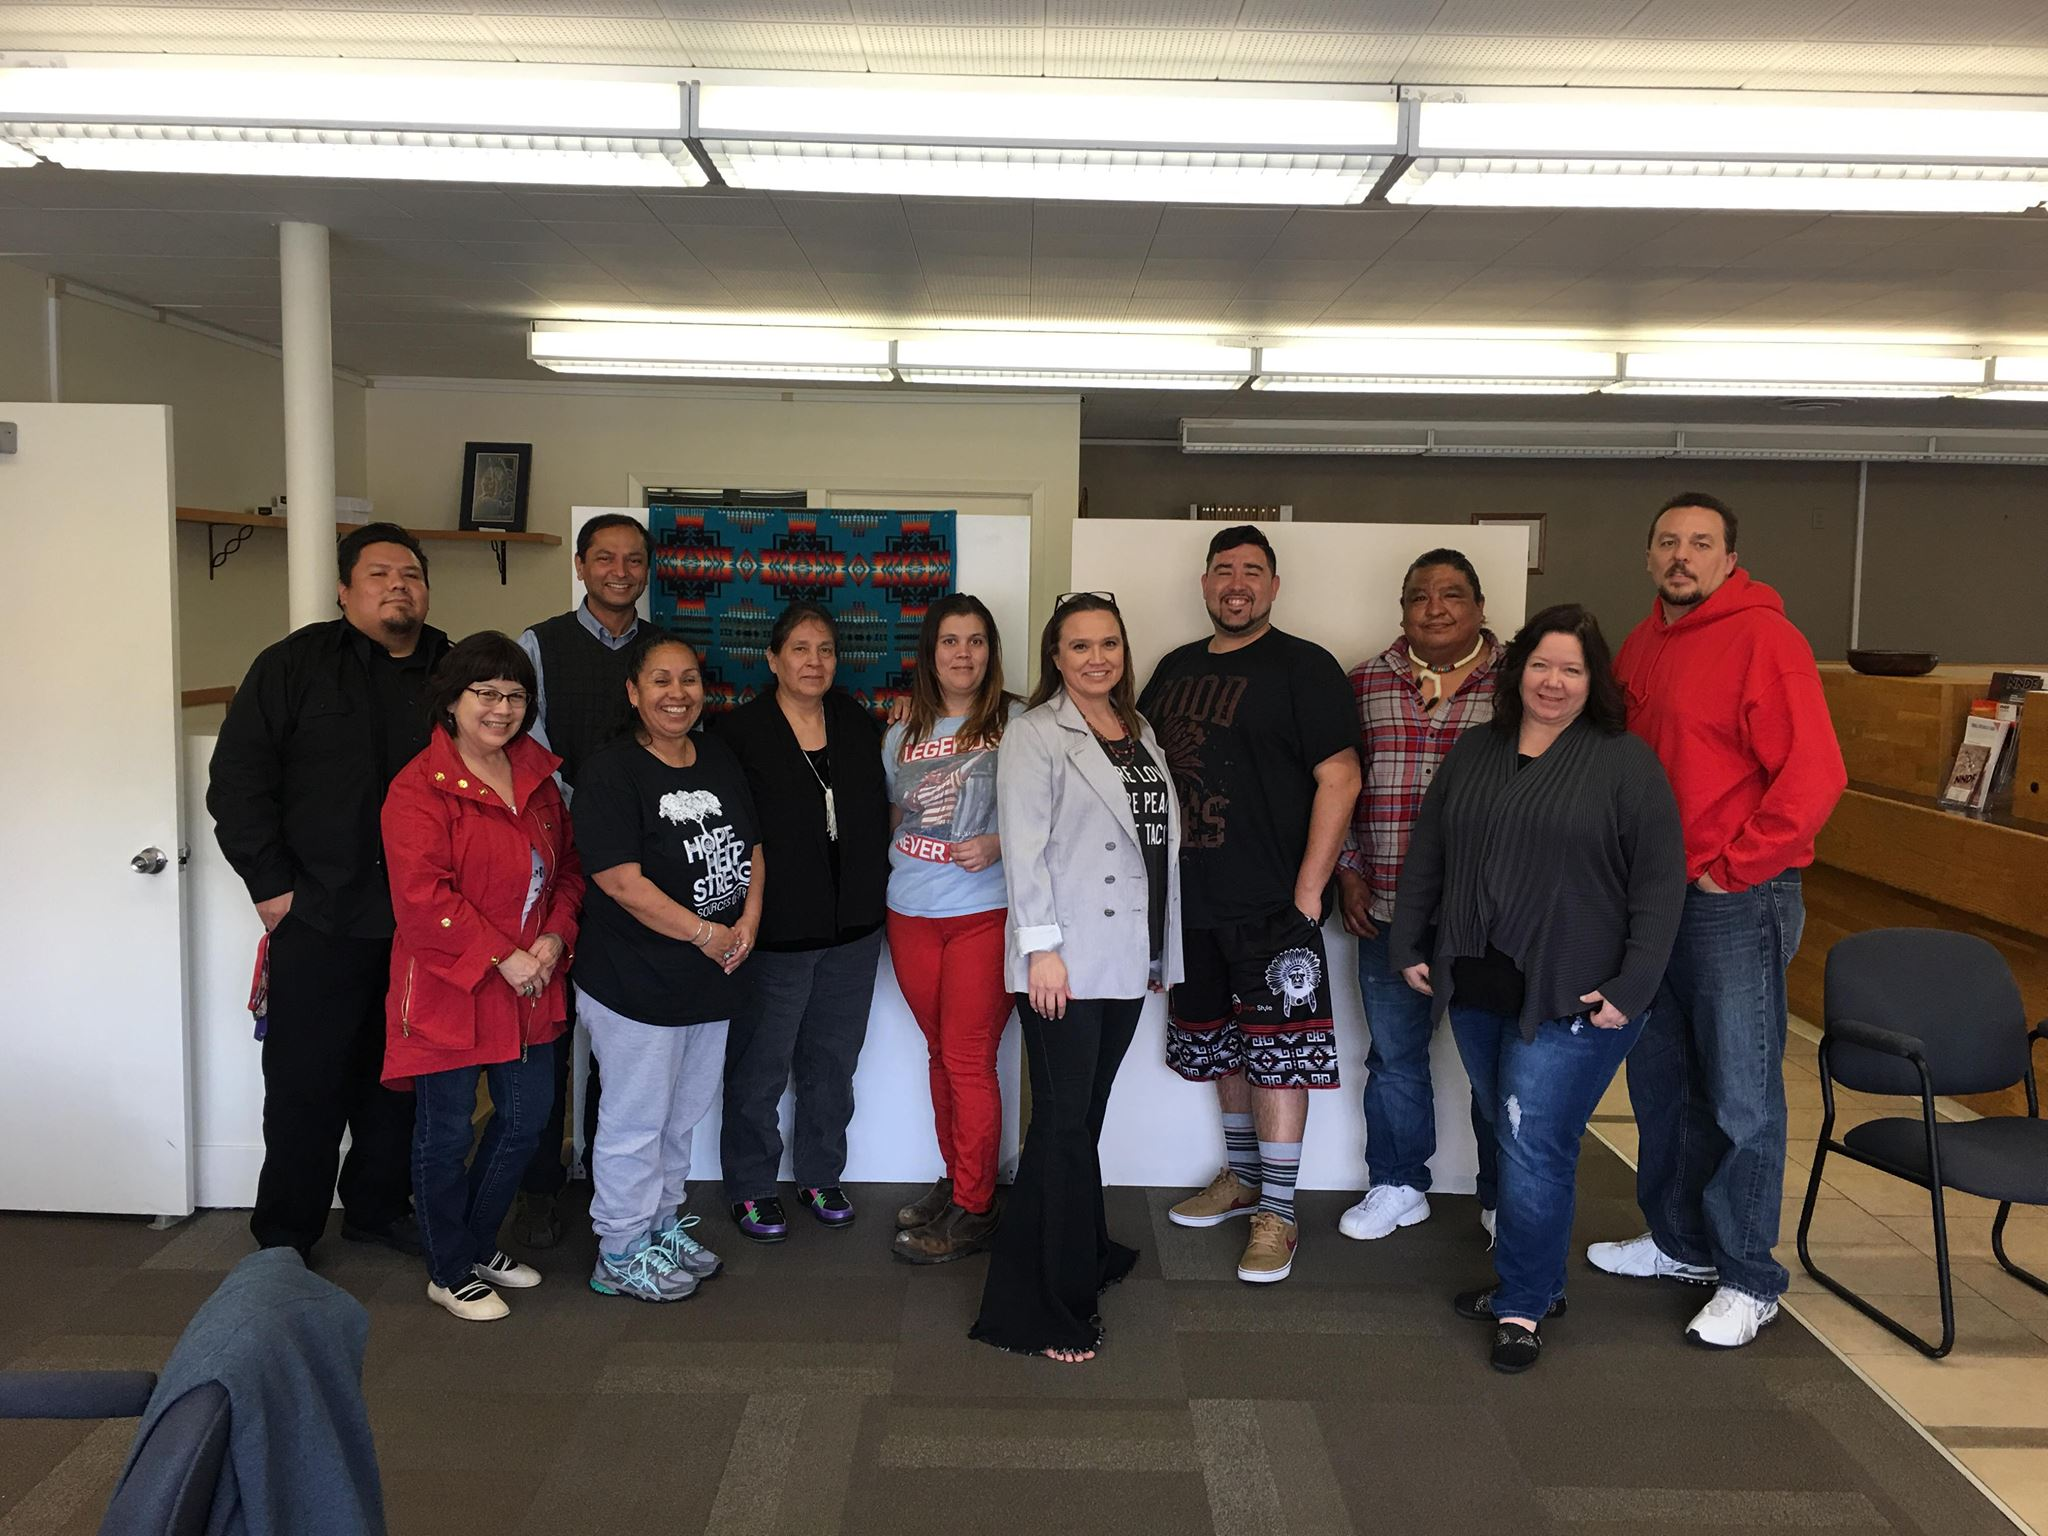 Northwest Native Development Fund hosted on First Peoples Fund Native Artist Professional Development training to local Native artists interested in strengthening their arts business.